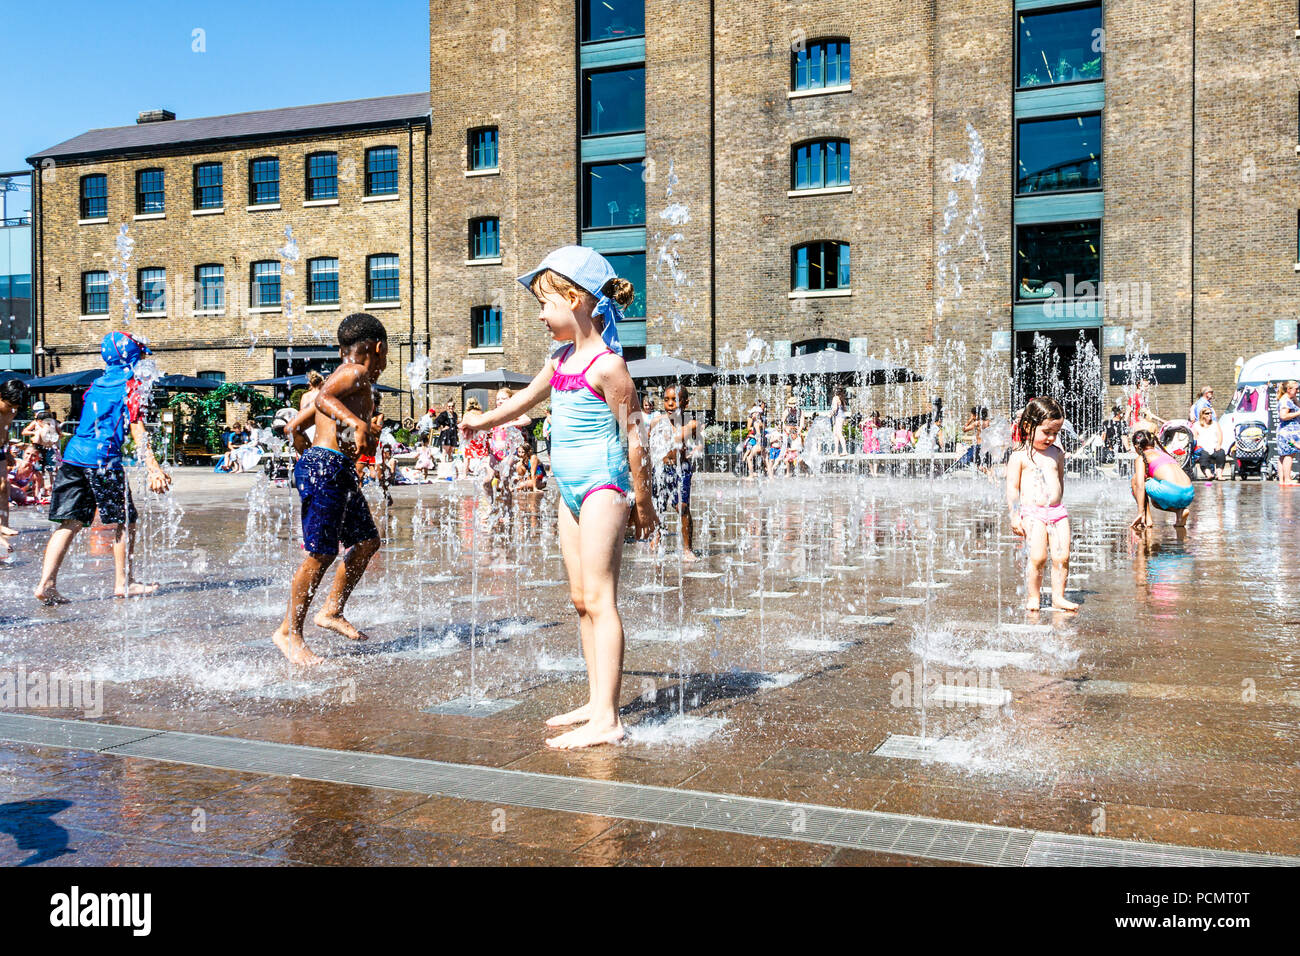 King's Cross, London, UK. 2nd August, 2018. As the British heatwave continues sun worshippers take to the canal and cool off in the fountains in Granary Square. Michael Heath/Alamy Live News - Stock Image